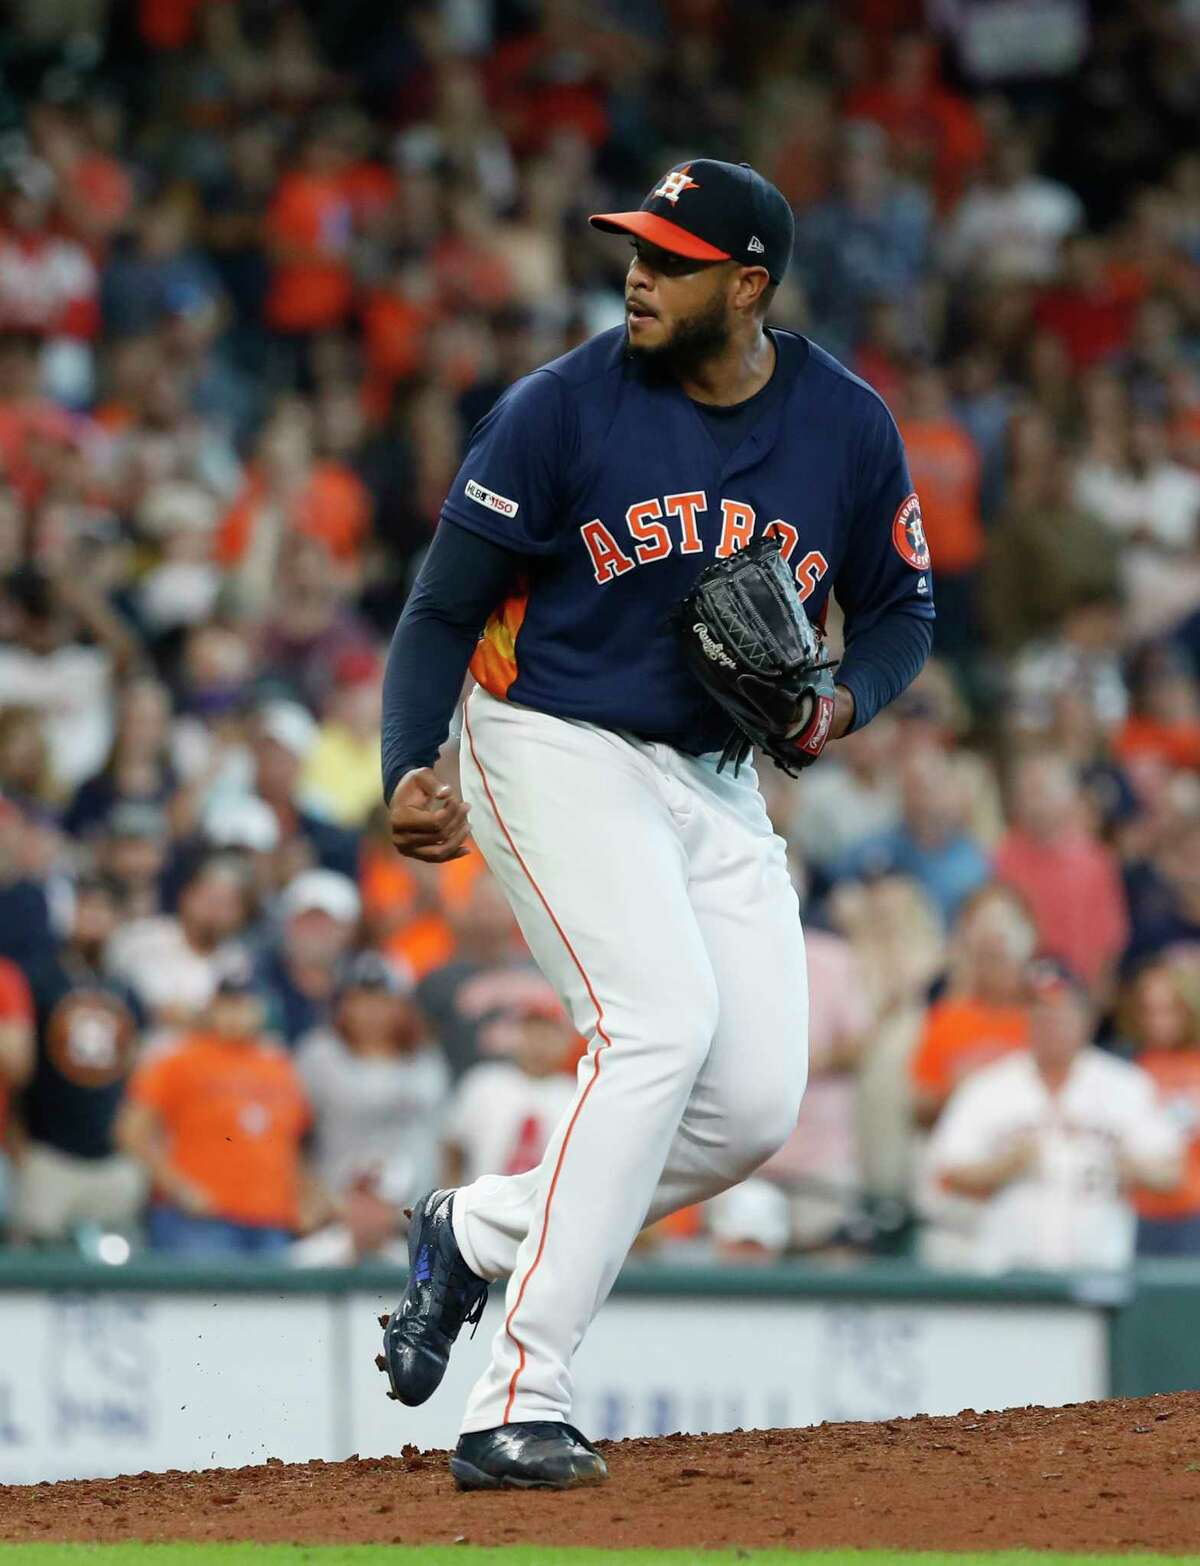 Houston Astros starting pitcher Josh James (39) reacts after Seattle Mariners Kyle Seager struck out to end the ninth inning of an MLB baseball game at Minute Maid Park,Sunday, June 30, 2019, in Houston.